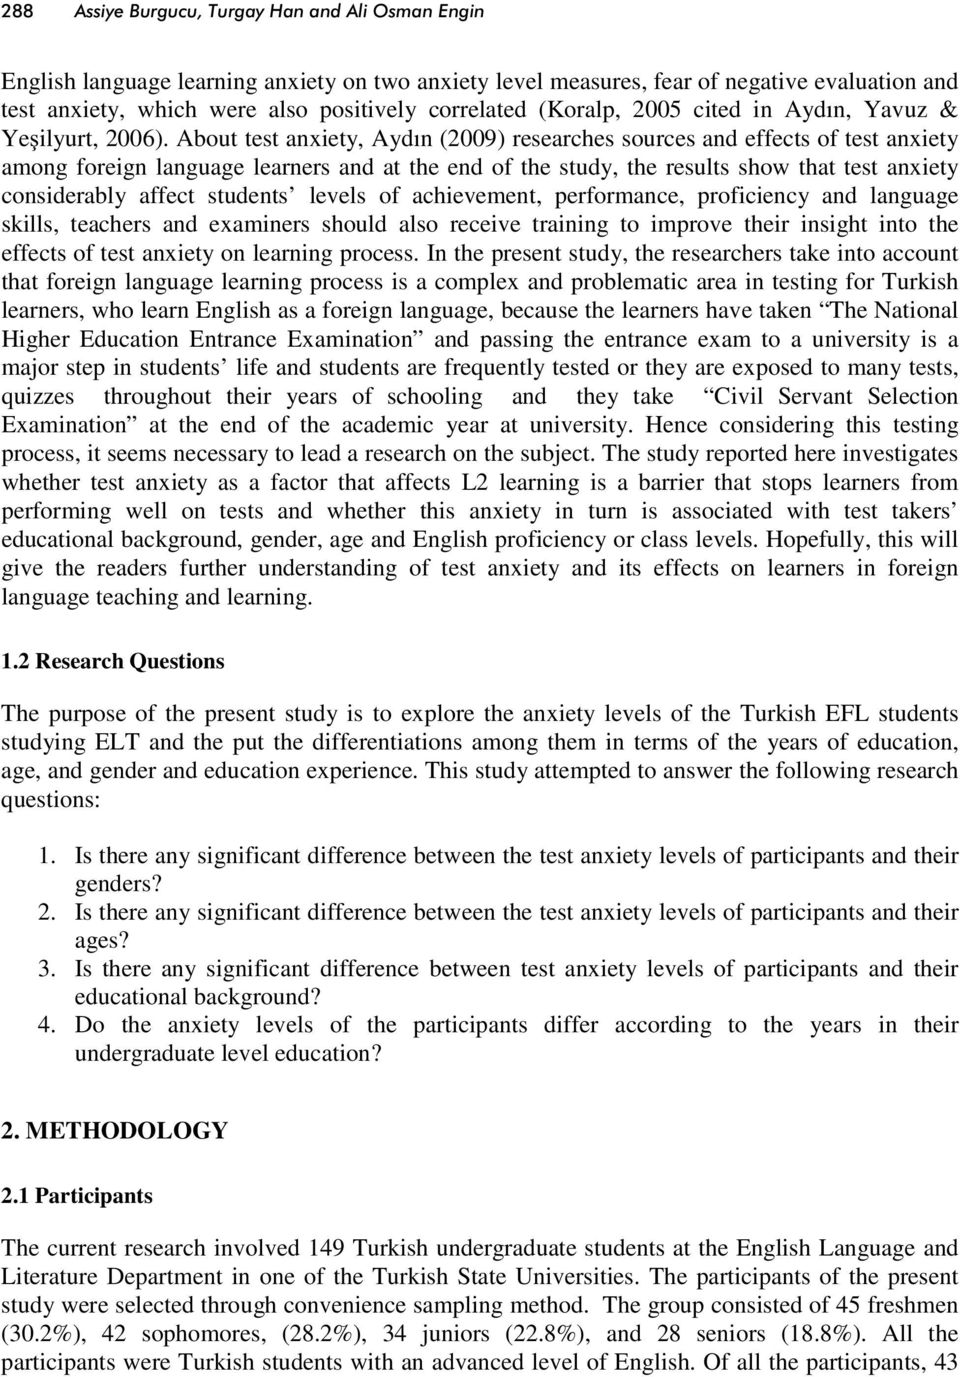 About test anxiety, Aydın (2009) researches sources and effects of test anxiety among foreign language learners and at the end of the study, the results show that test anxiety considerably affect